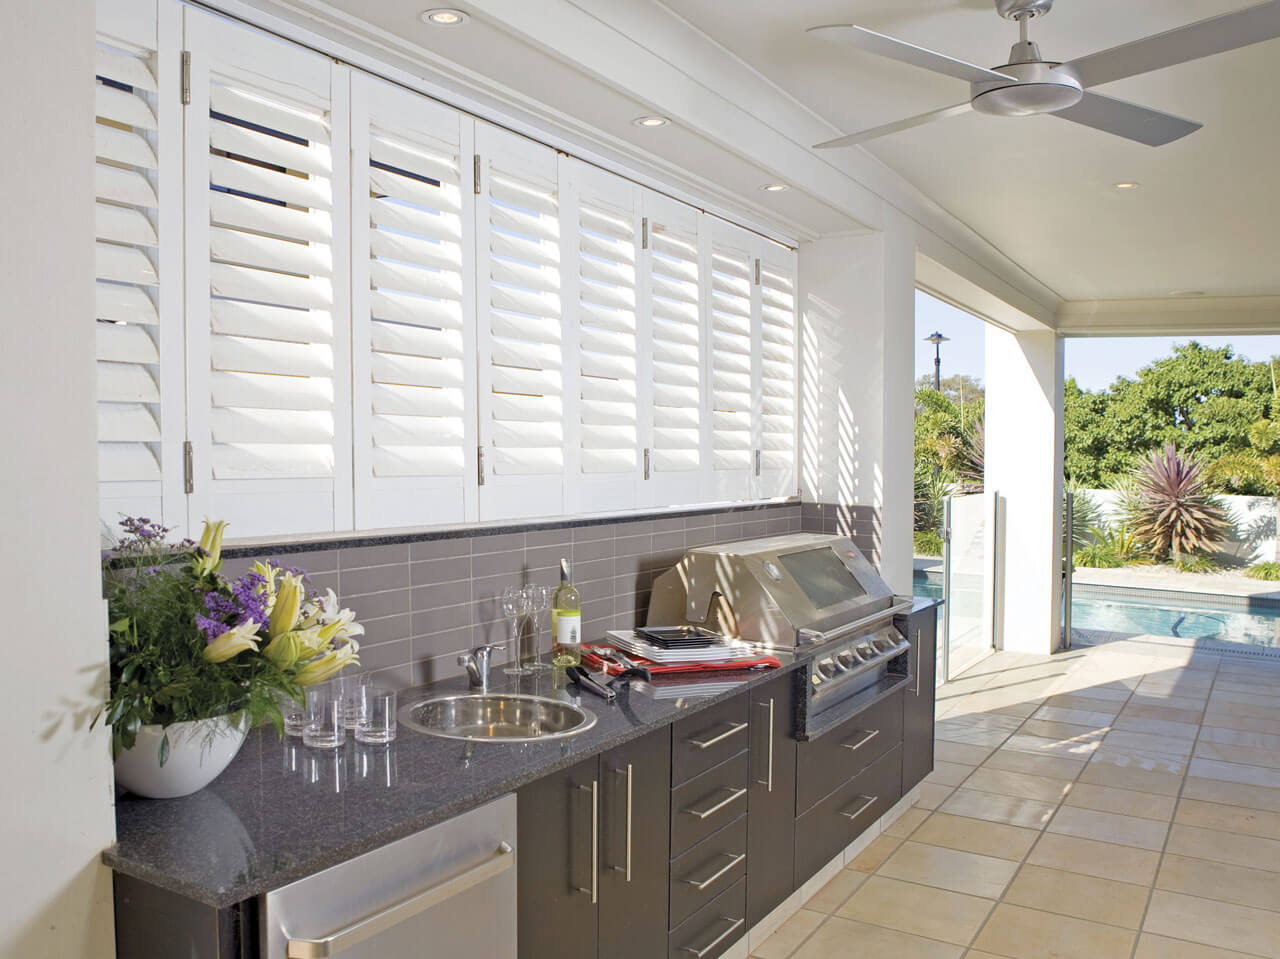 Modern plantation shutters on patio